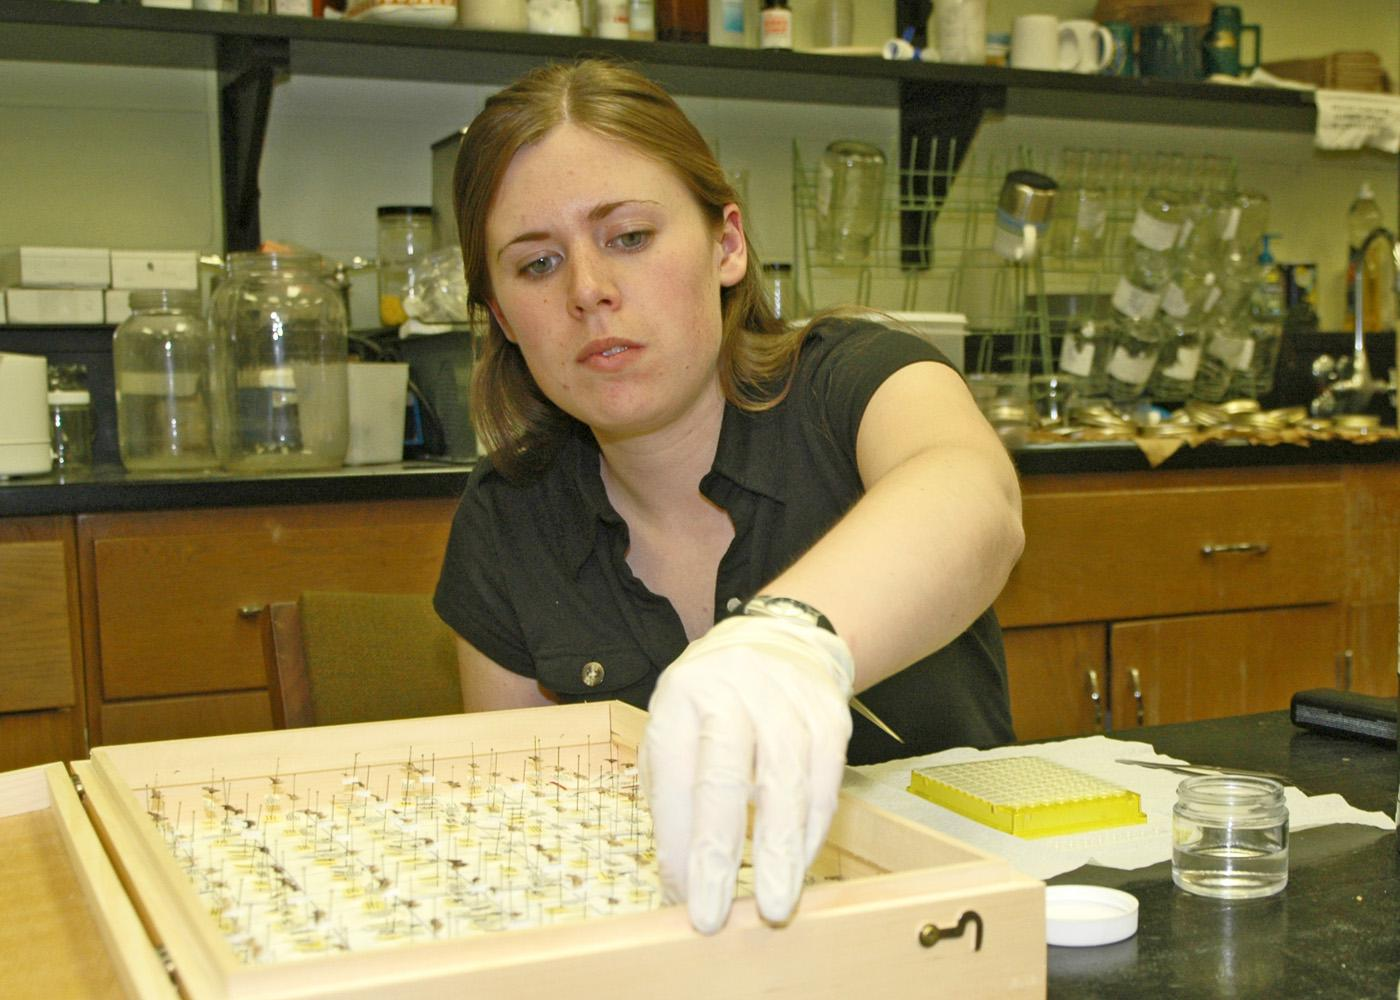 Canadian wildlife biologist Jayme Sones reaches for a specimen in the insect collection at Mississippi State University's entomological museum. Sones is part of a worldwide research effort to catalog DNA of all living species for easier identification. (Photo by Patti Drapala)